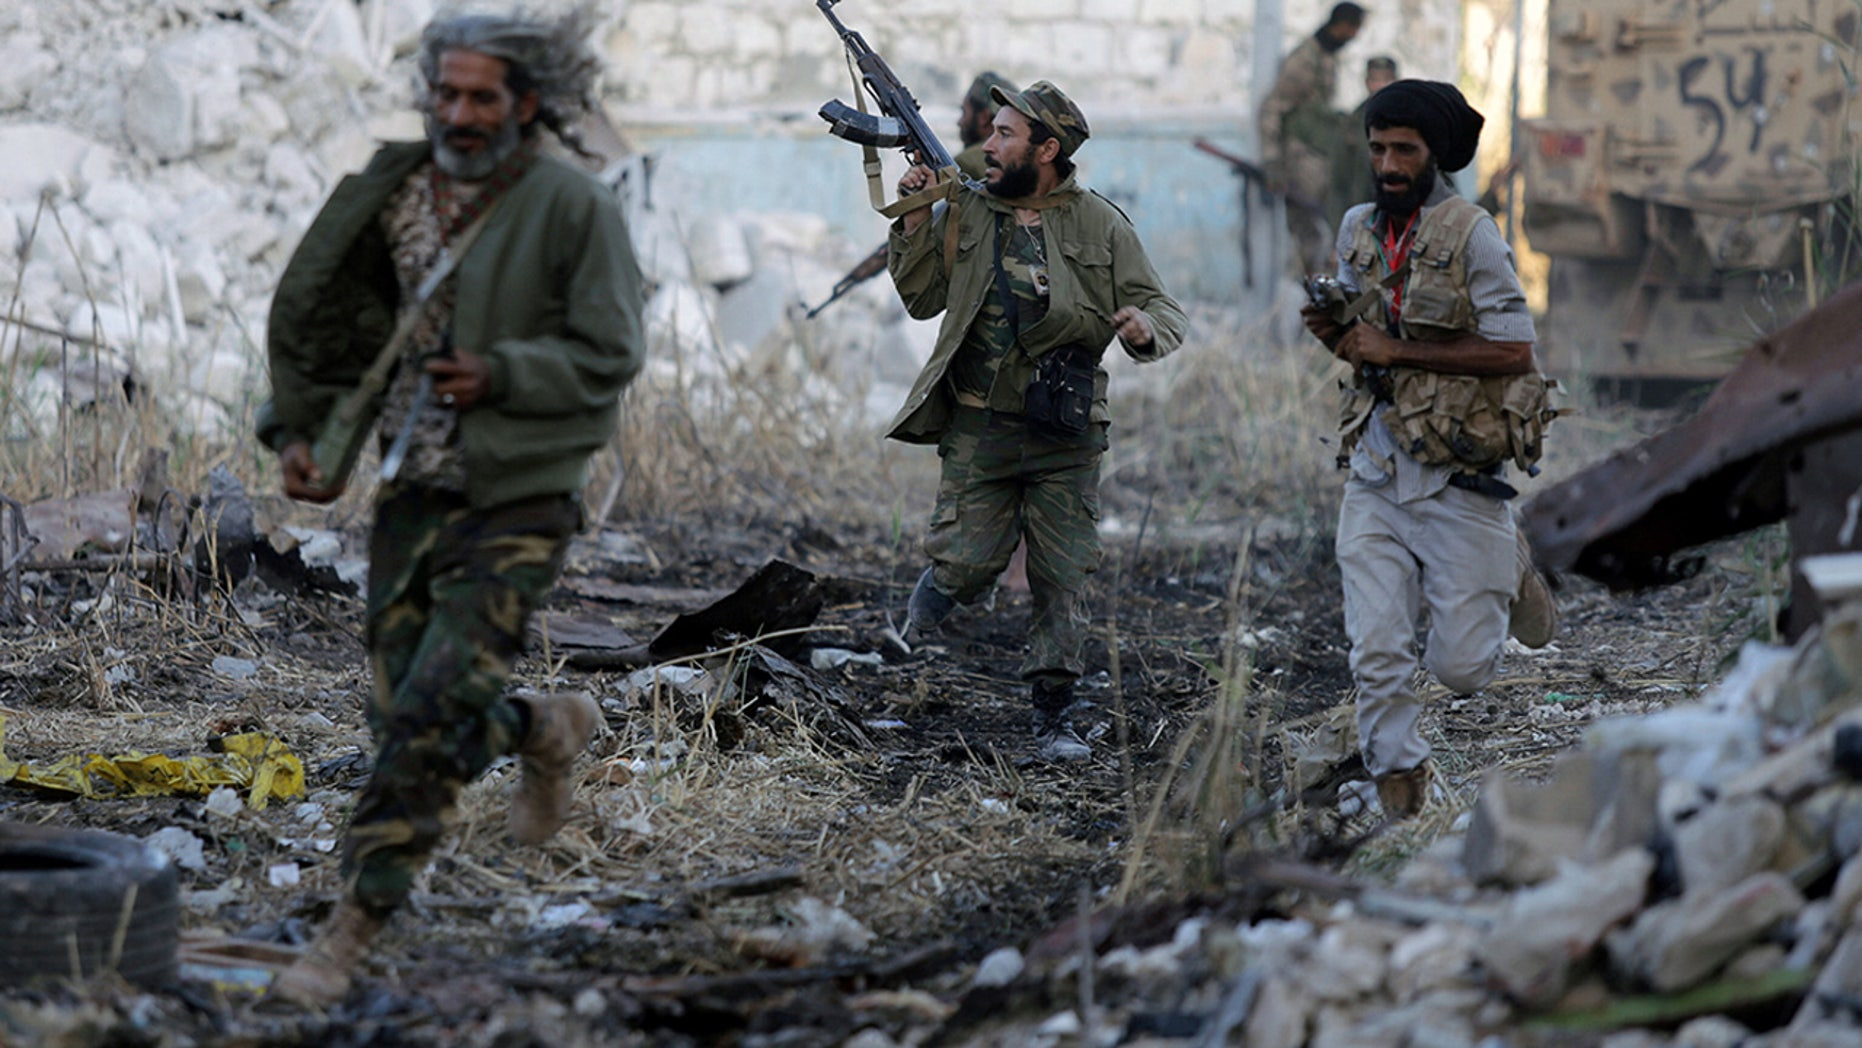 The Libyan National Army has been battling ISIS in the cities of Sirte and Benghazi.